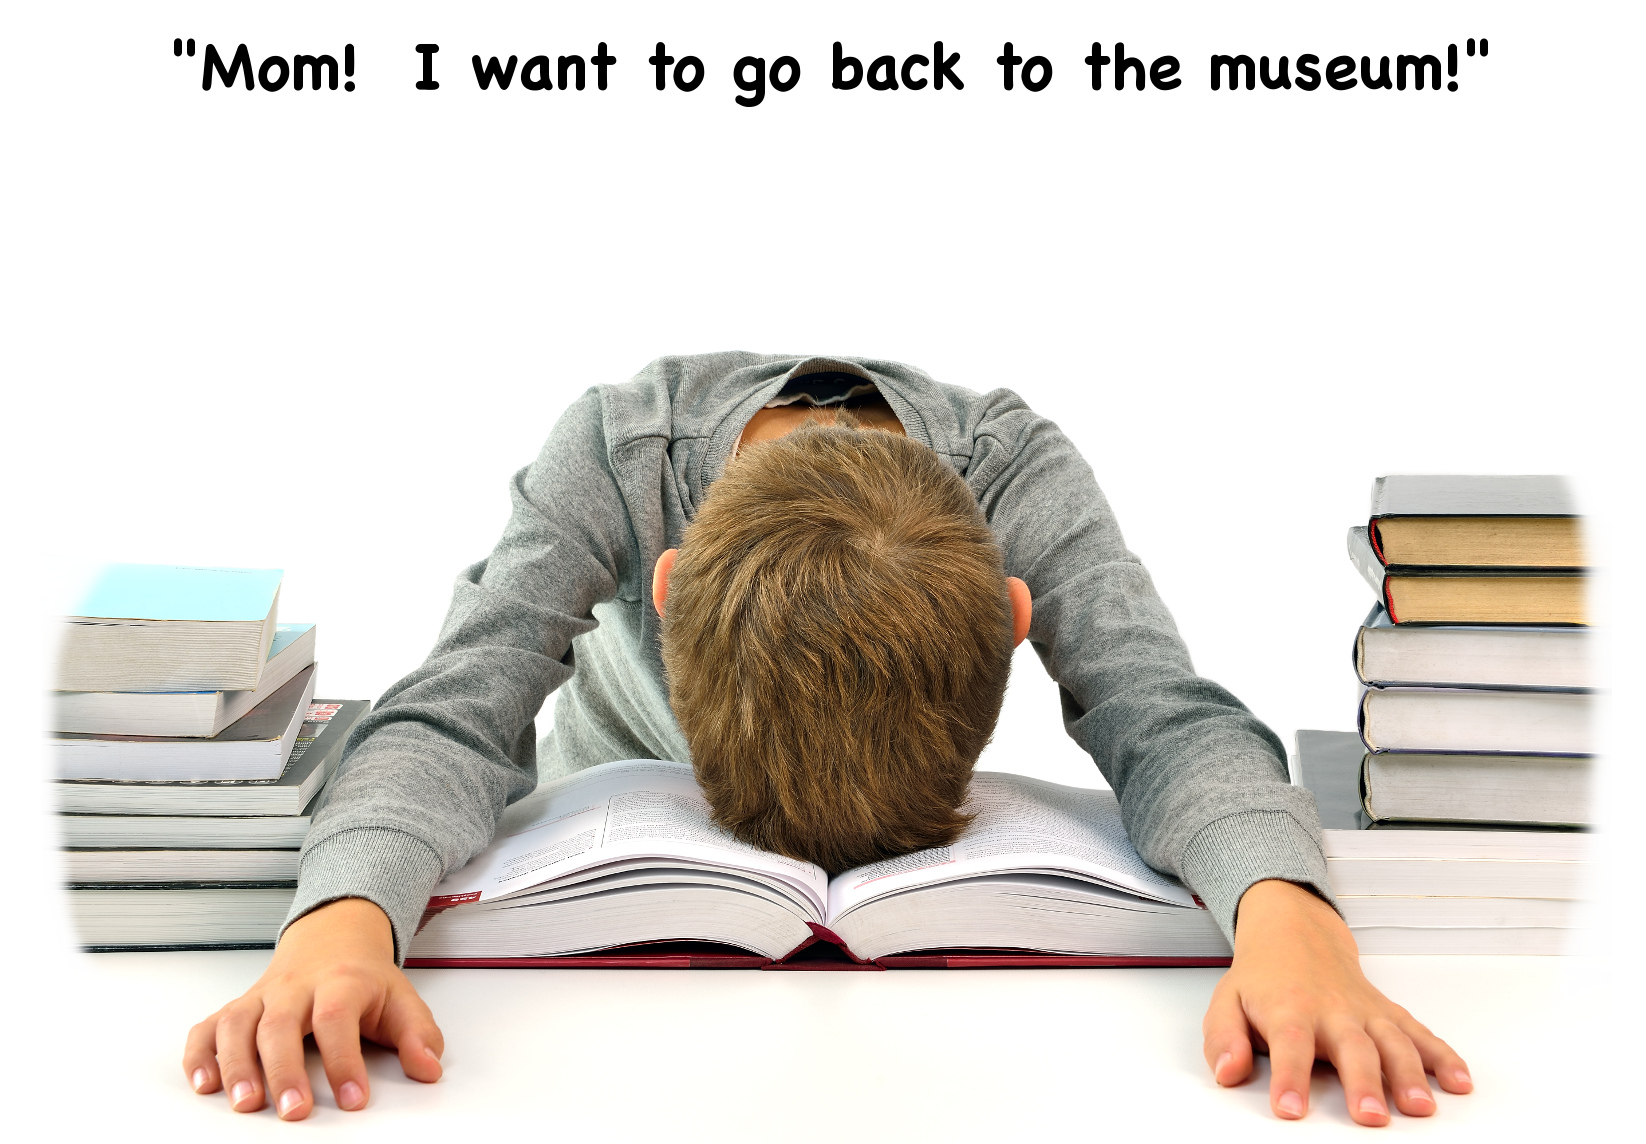 Mom!  I want to go back to the museum!